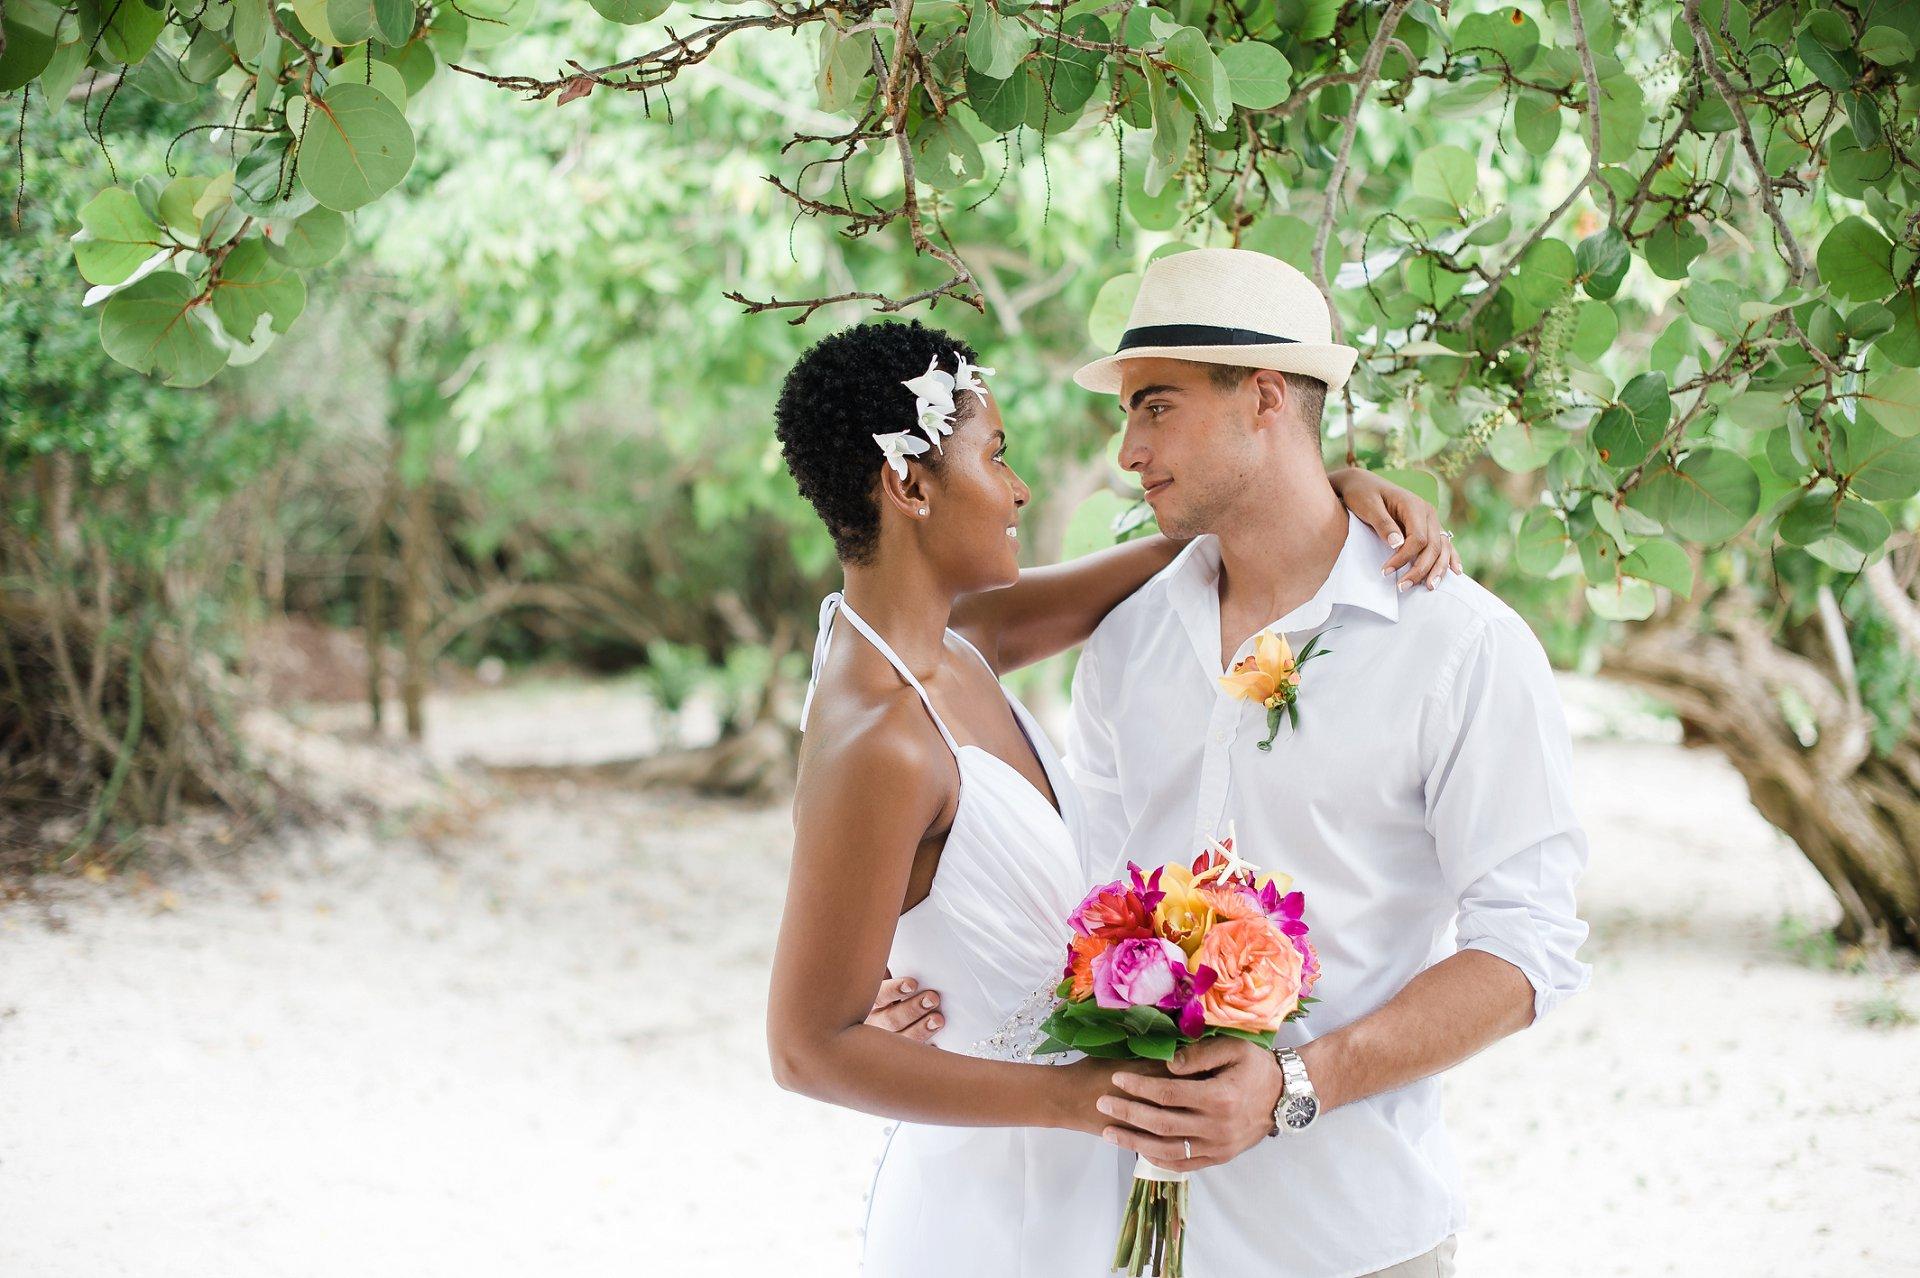 Bride and groom portrait under seagrape trees at Caribbean destination wedding